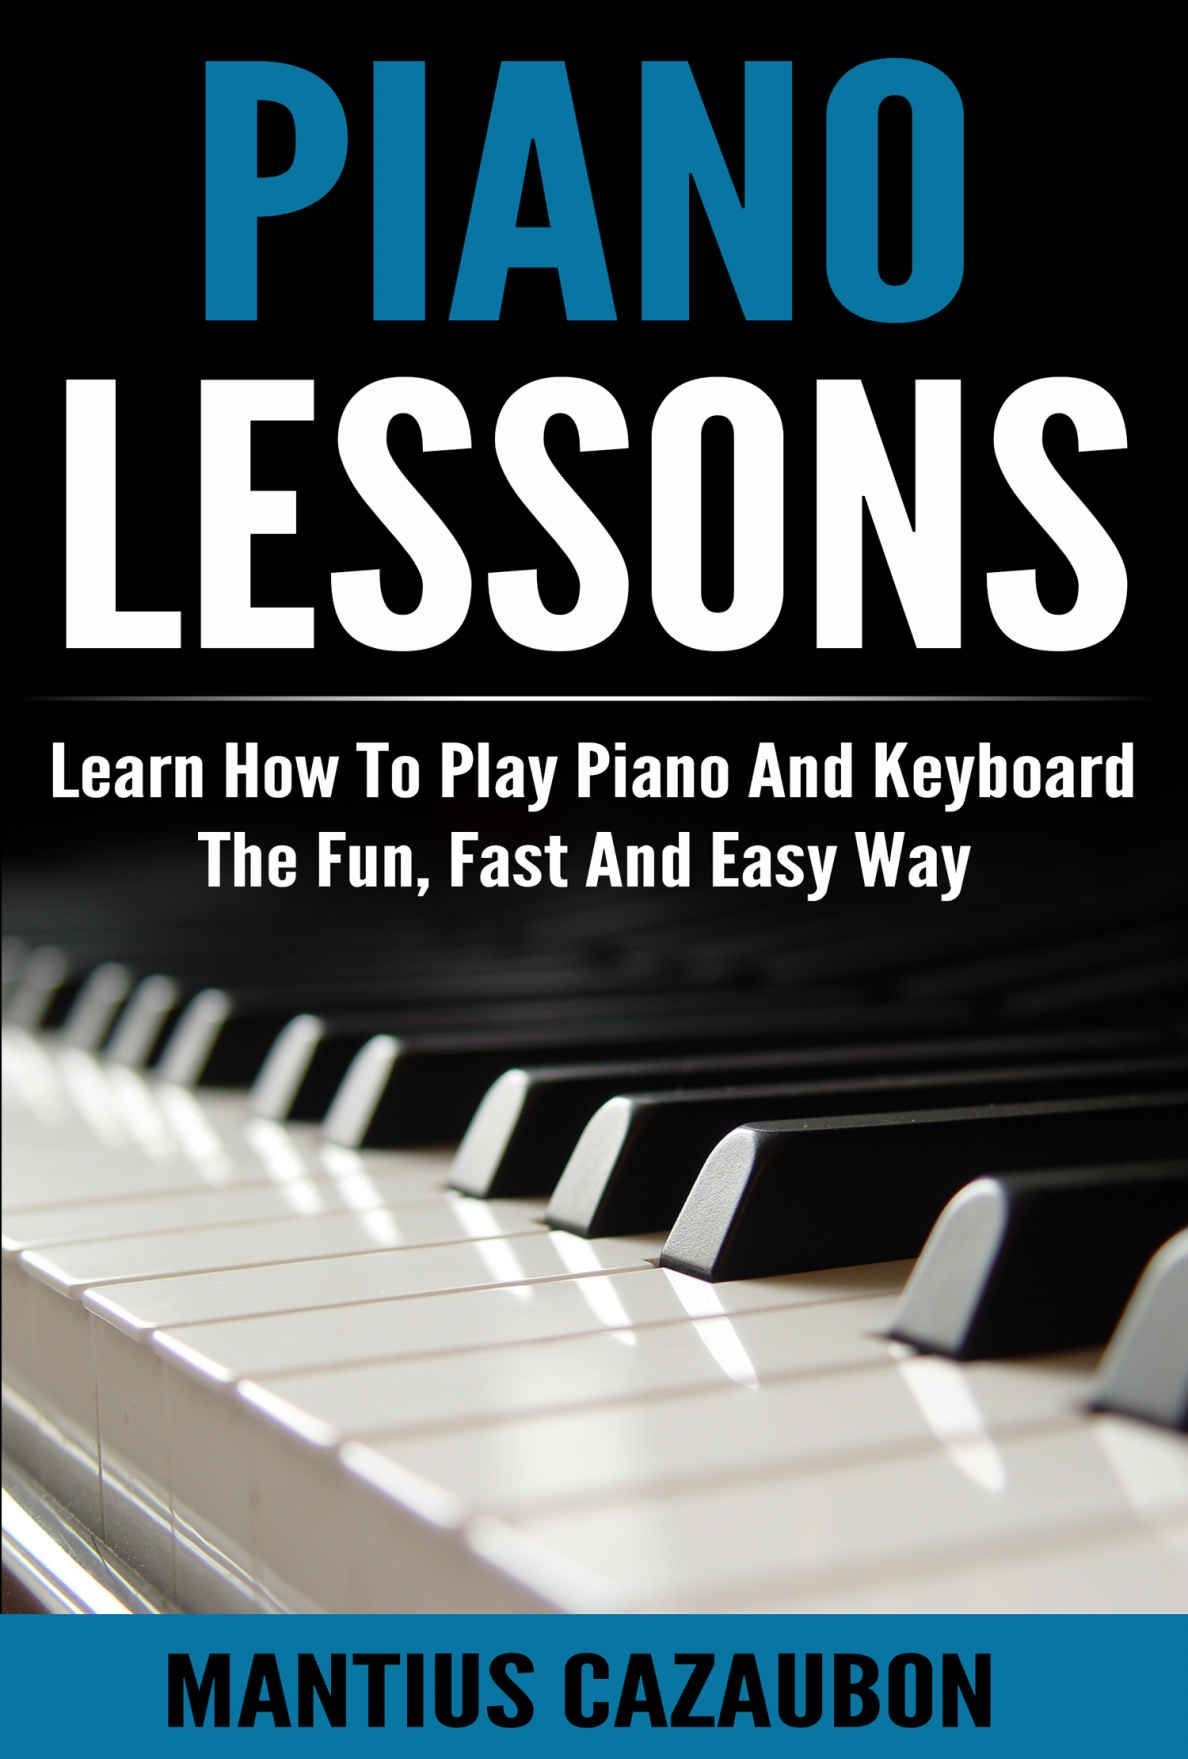 Piano Lessons Learn How To Play Piano And Keyboard The